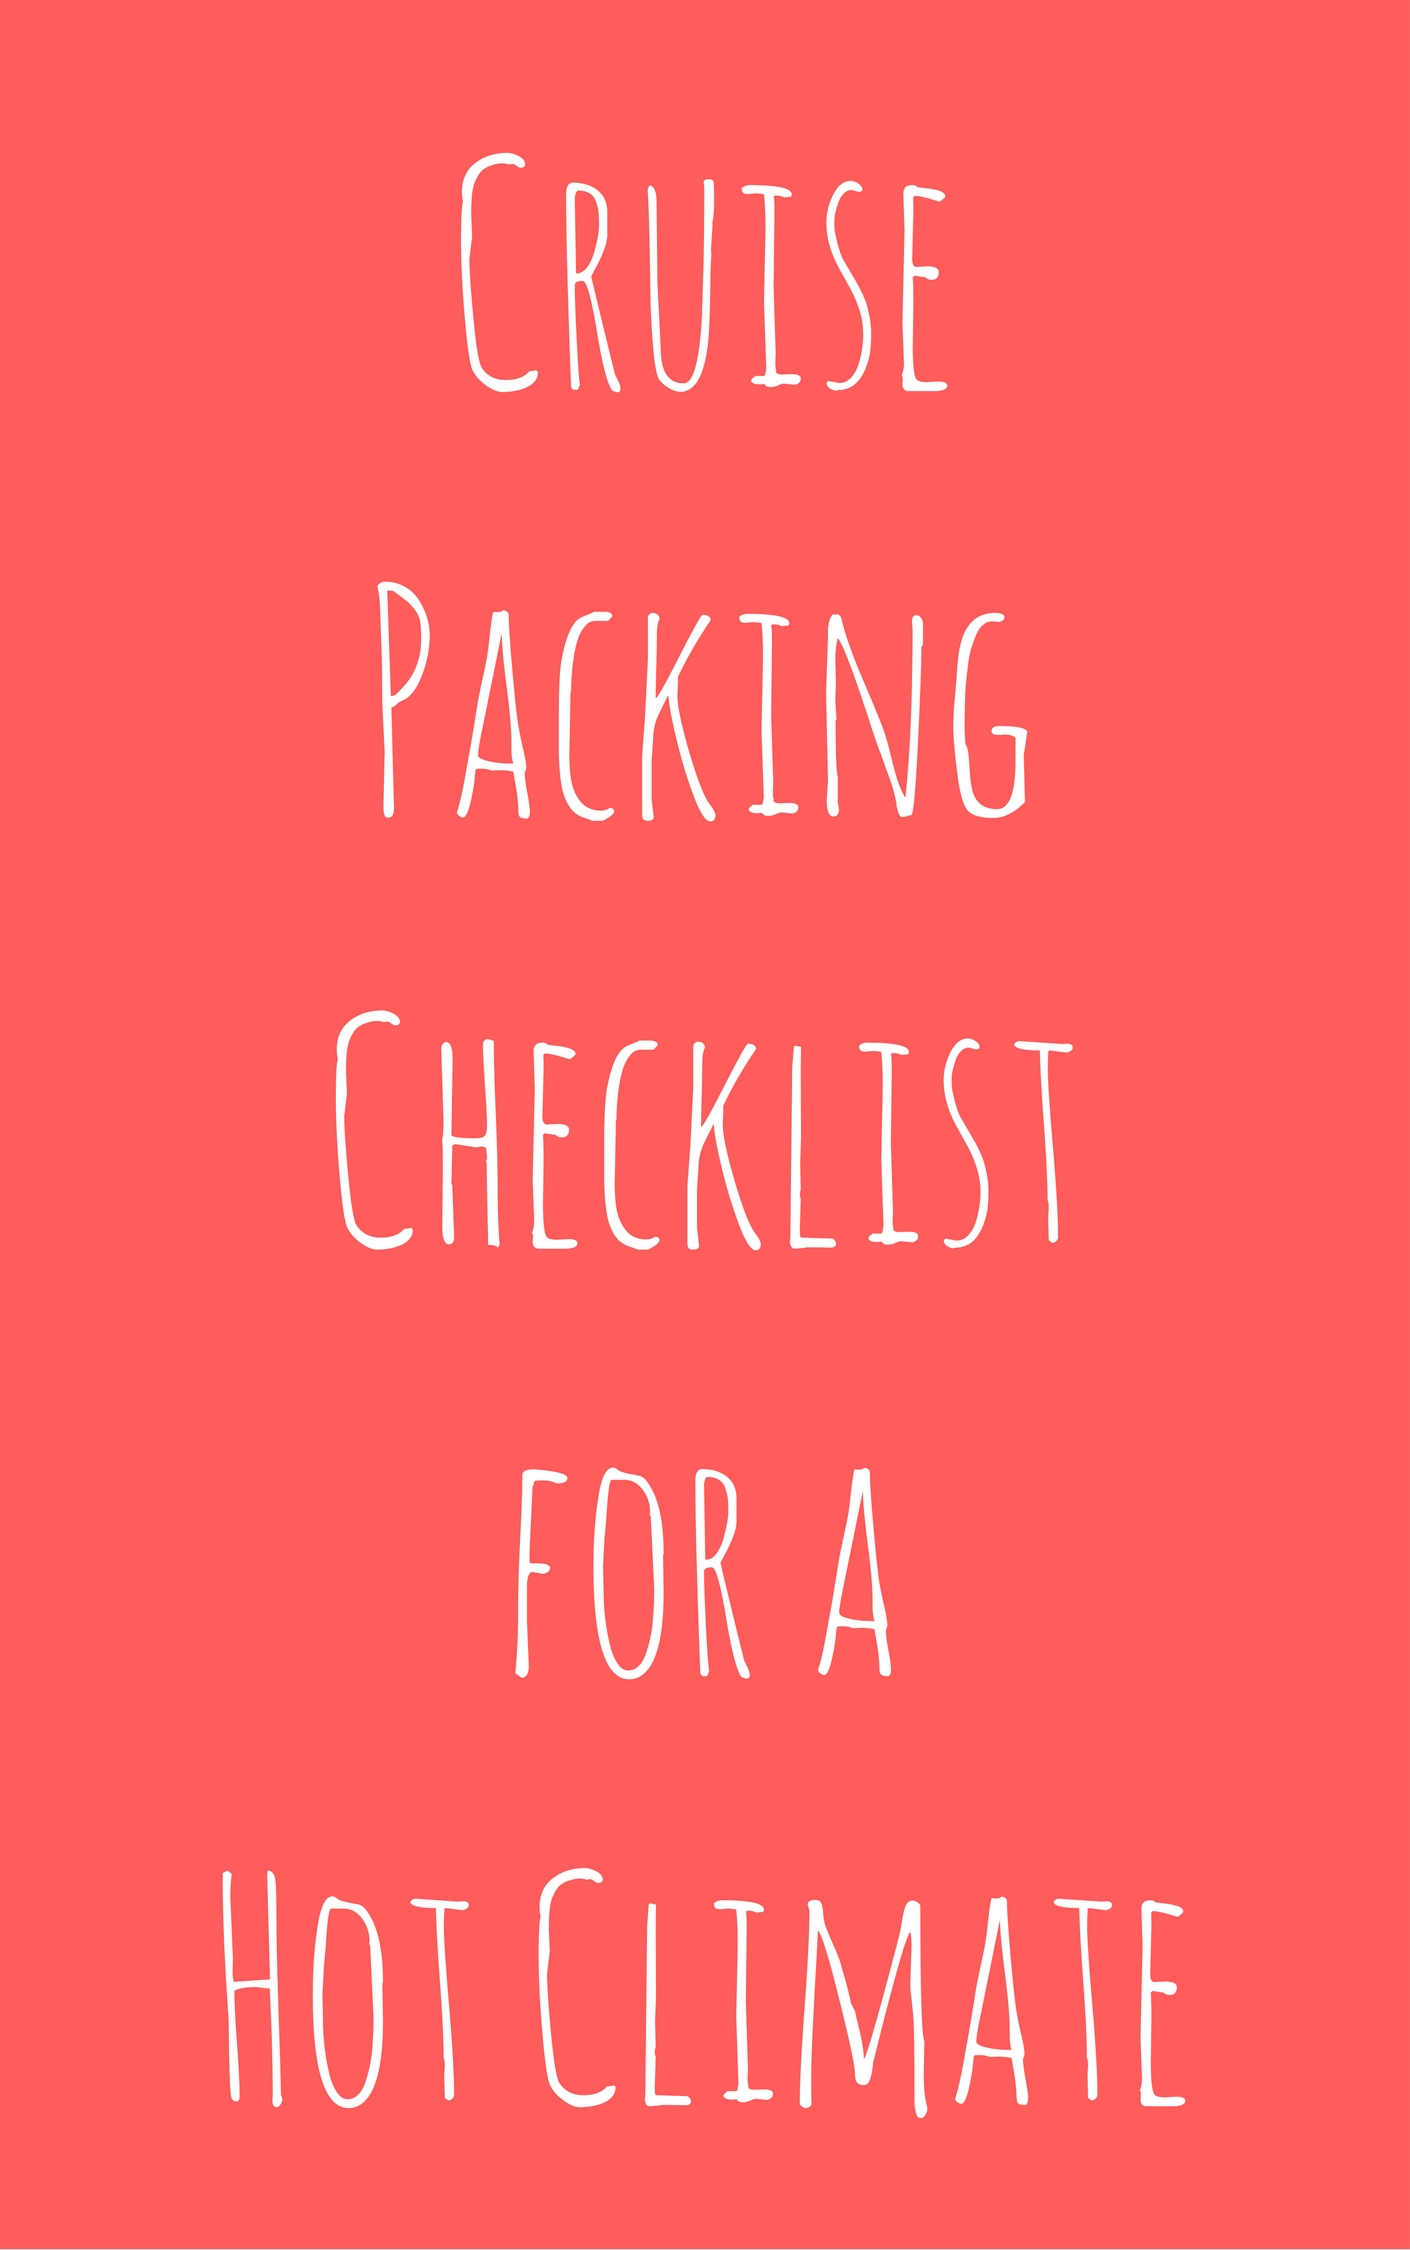 Cruise Packing Checklist for a Hot Climate